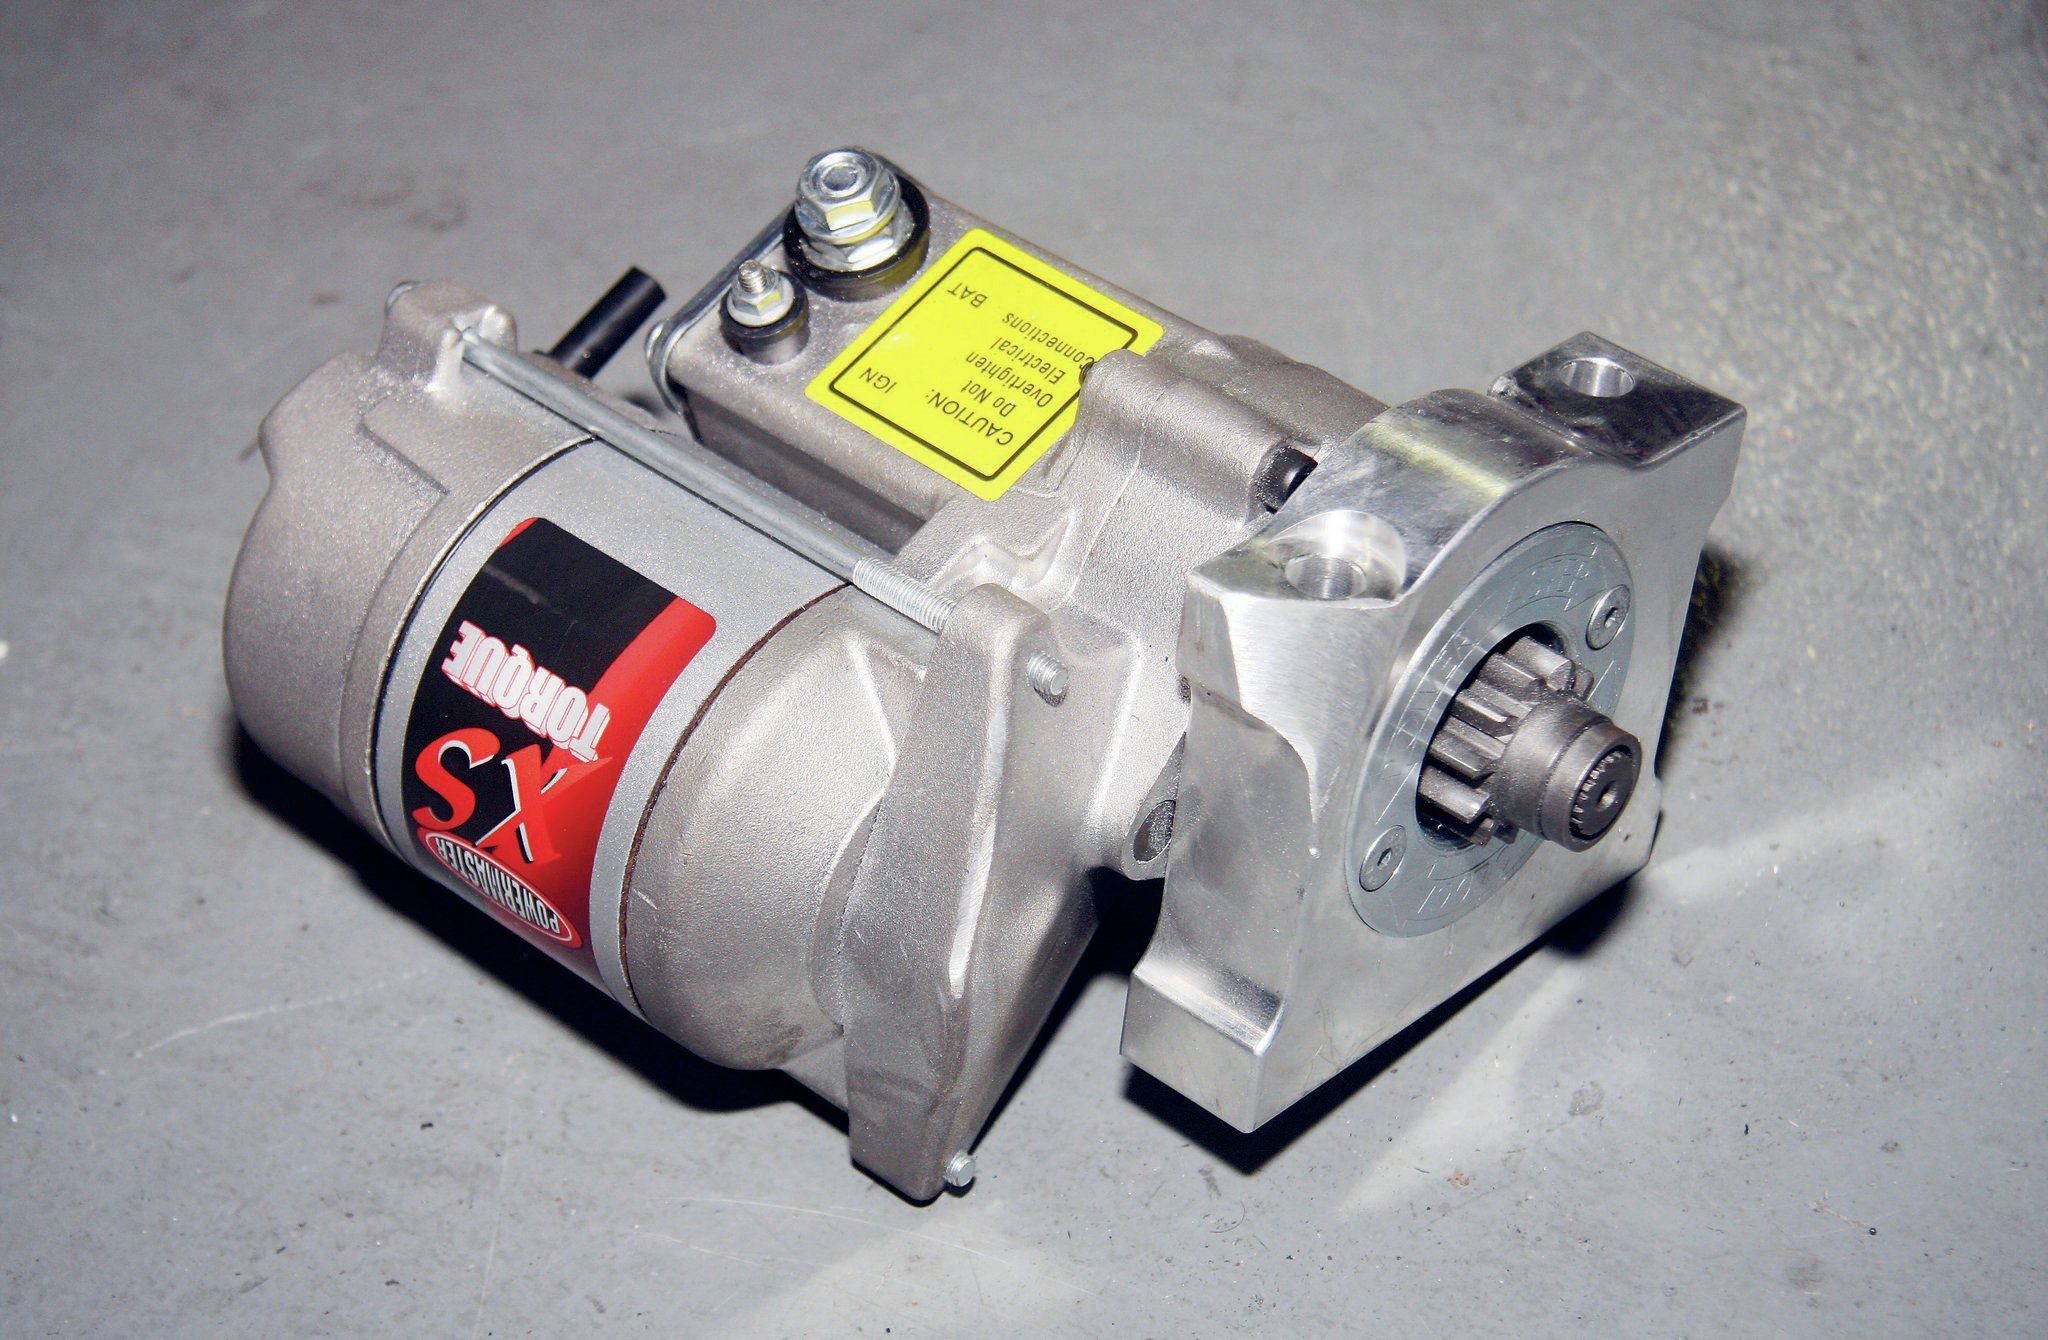 A compact Powermaster XS Torque starter was used for the swap. A corner of the starter flange had to be ground down some to clear the bellhousing. Wiring is straight-forward and the factory Jeep connections were all used on the new starter.